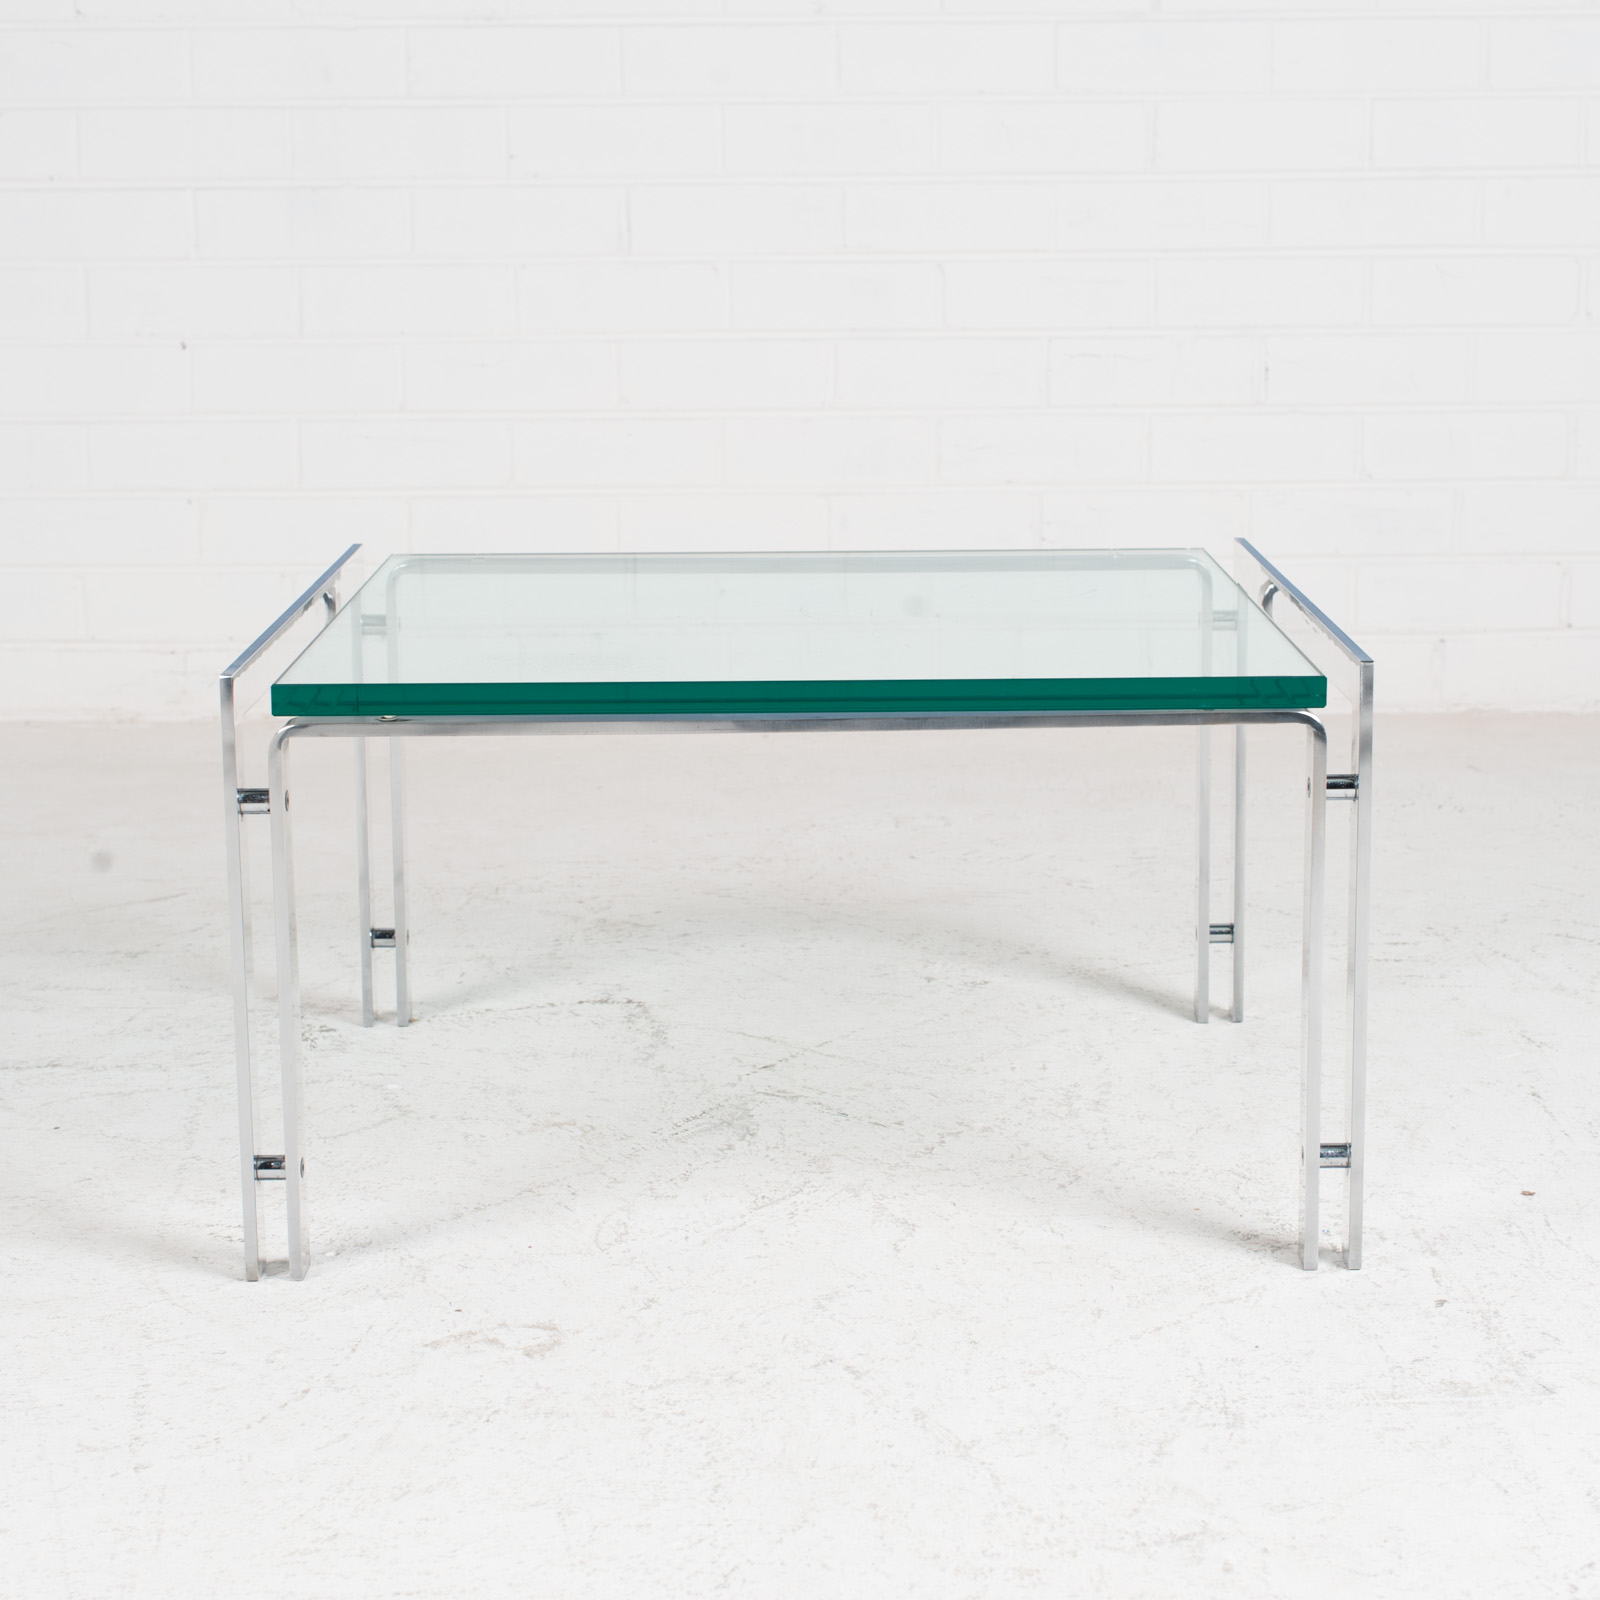 M1 Coffee Table By Hank Kwint For Metaform In Chrome 1970s Netherlands 01